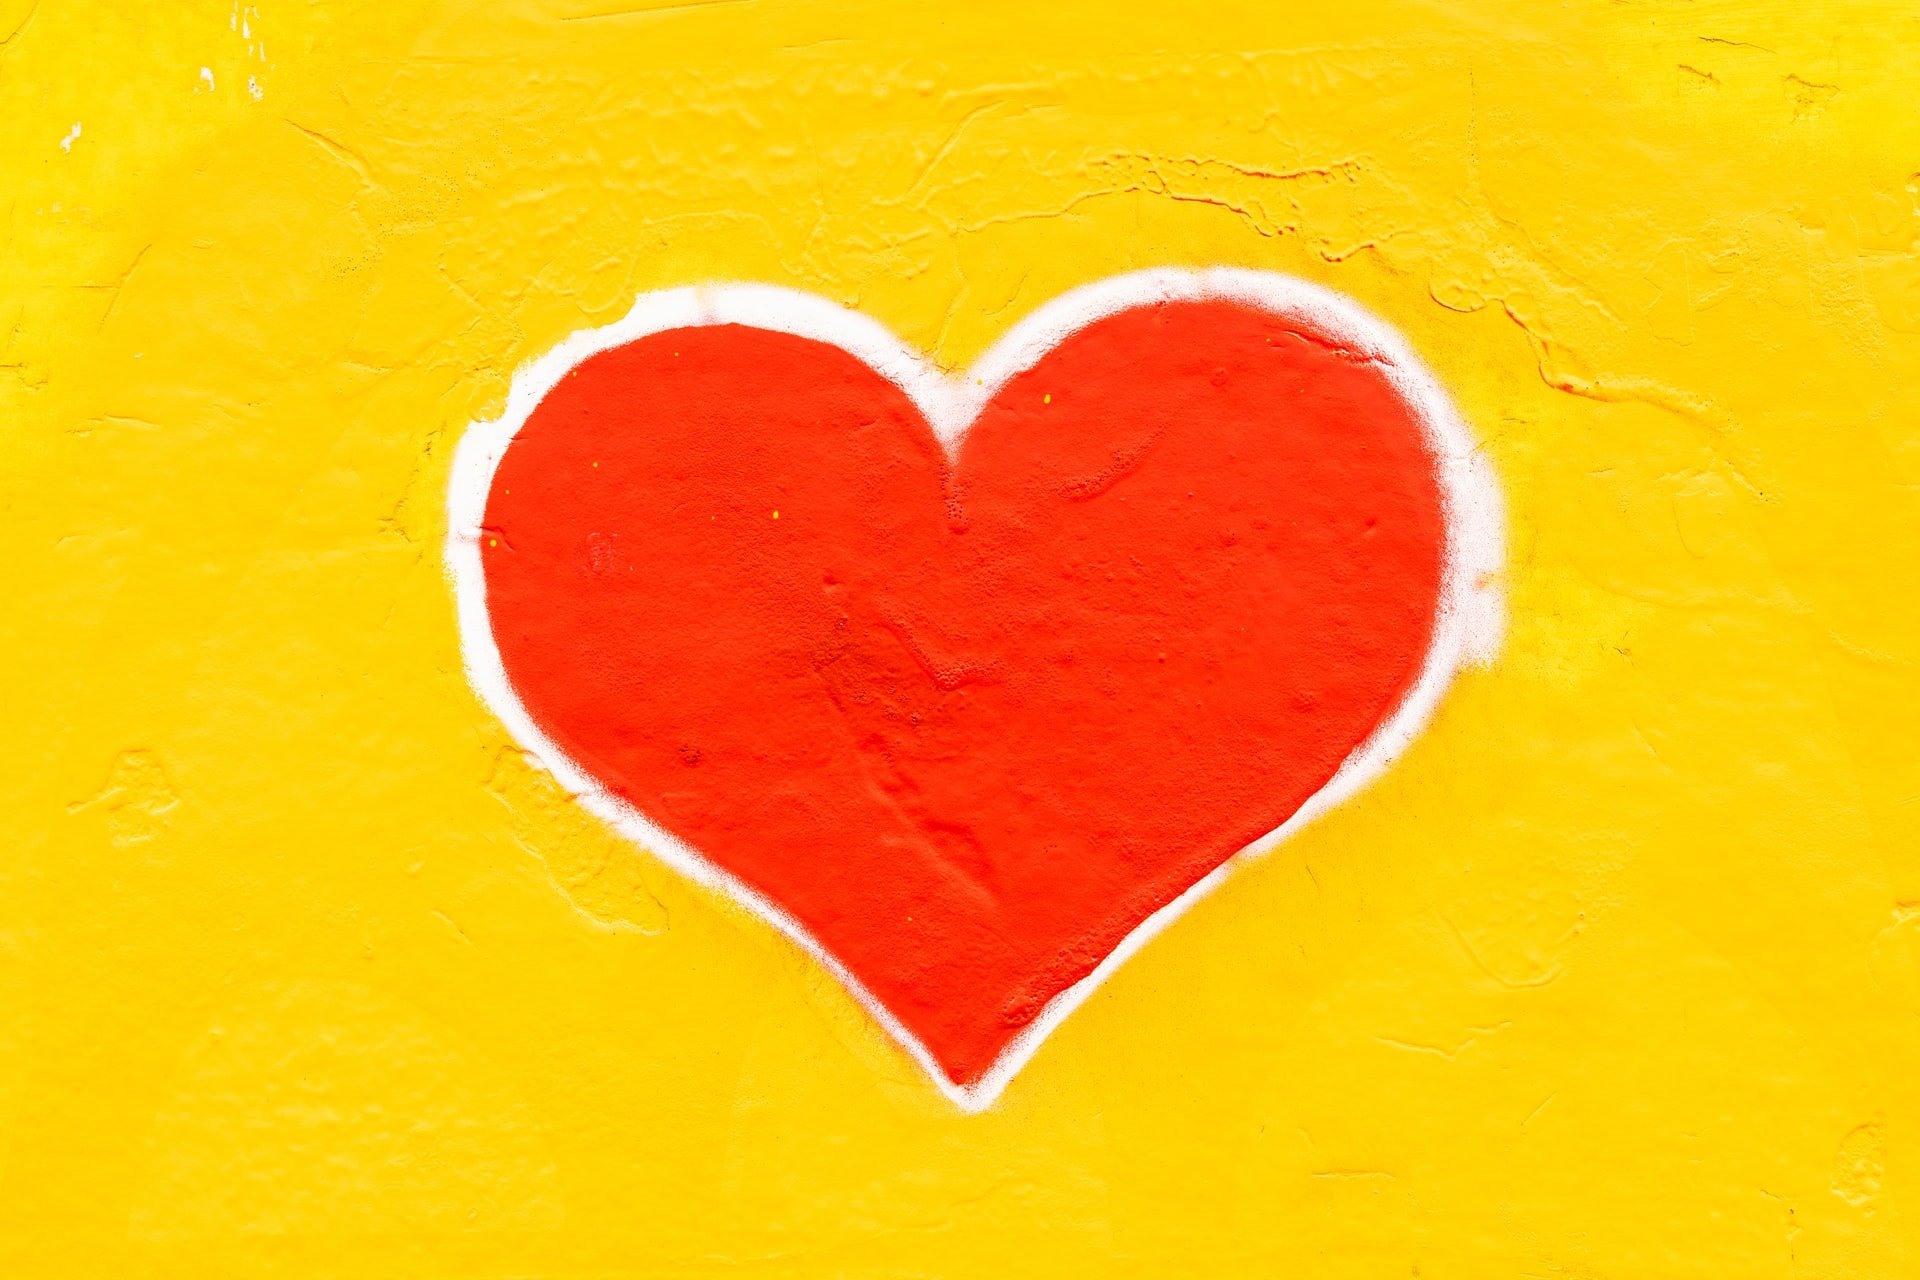 red heart on a yellow background